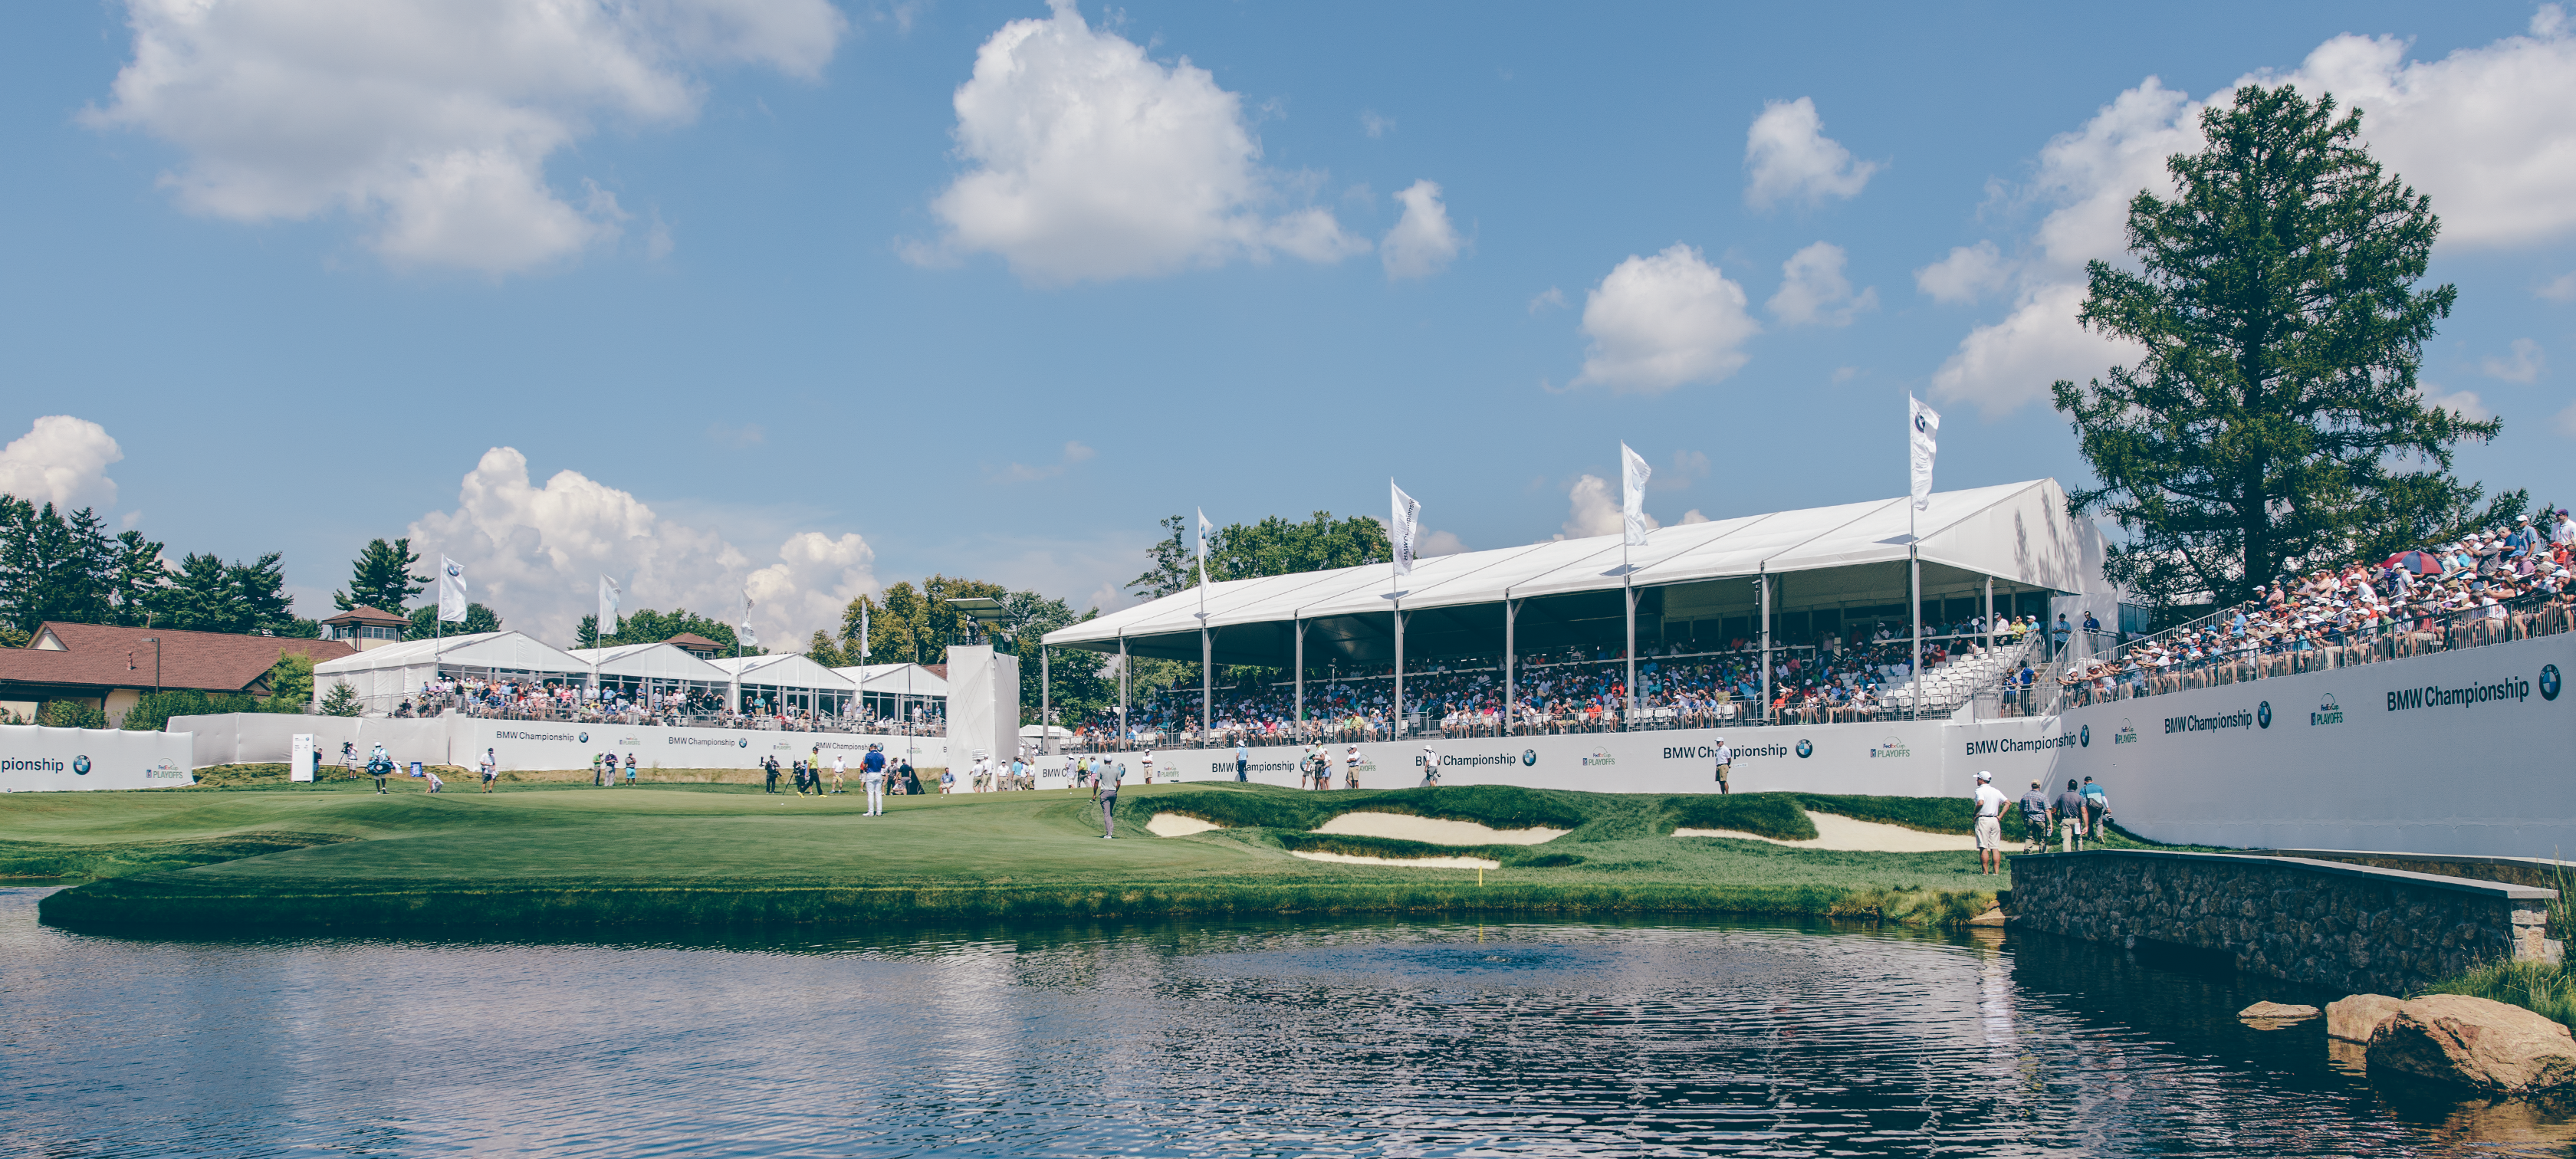 25 New BMW Championship 2020 Location Reviews with BMW Championship 2020 Location